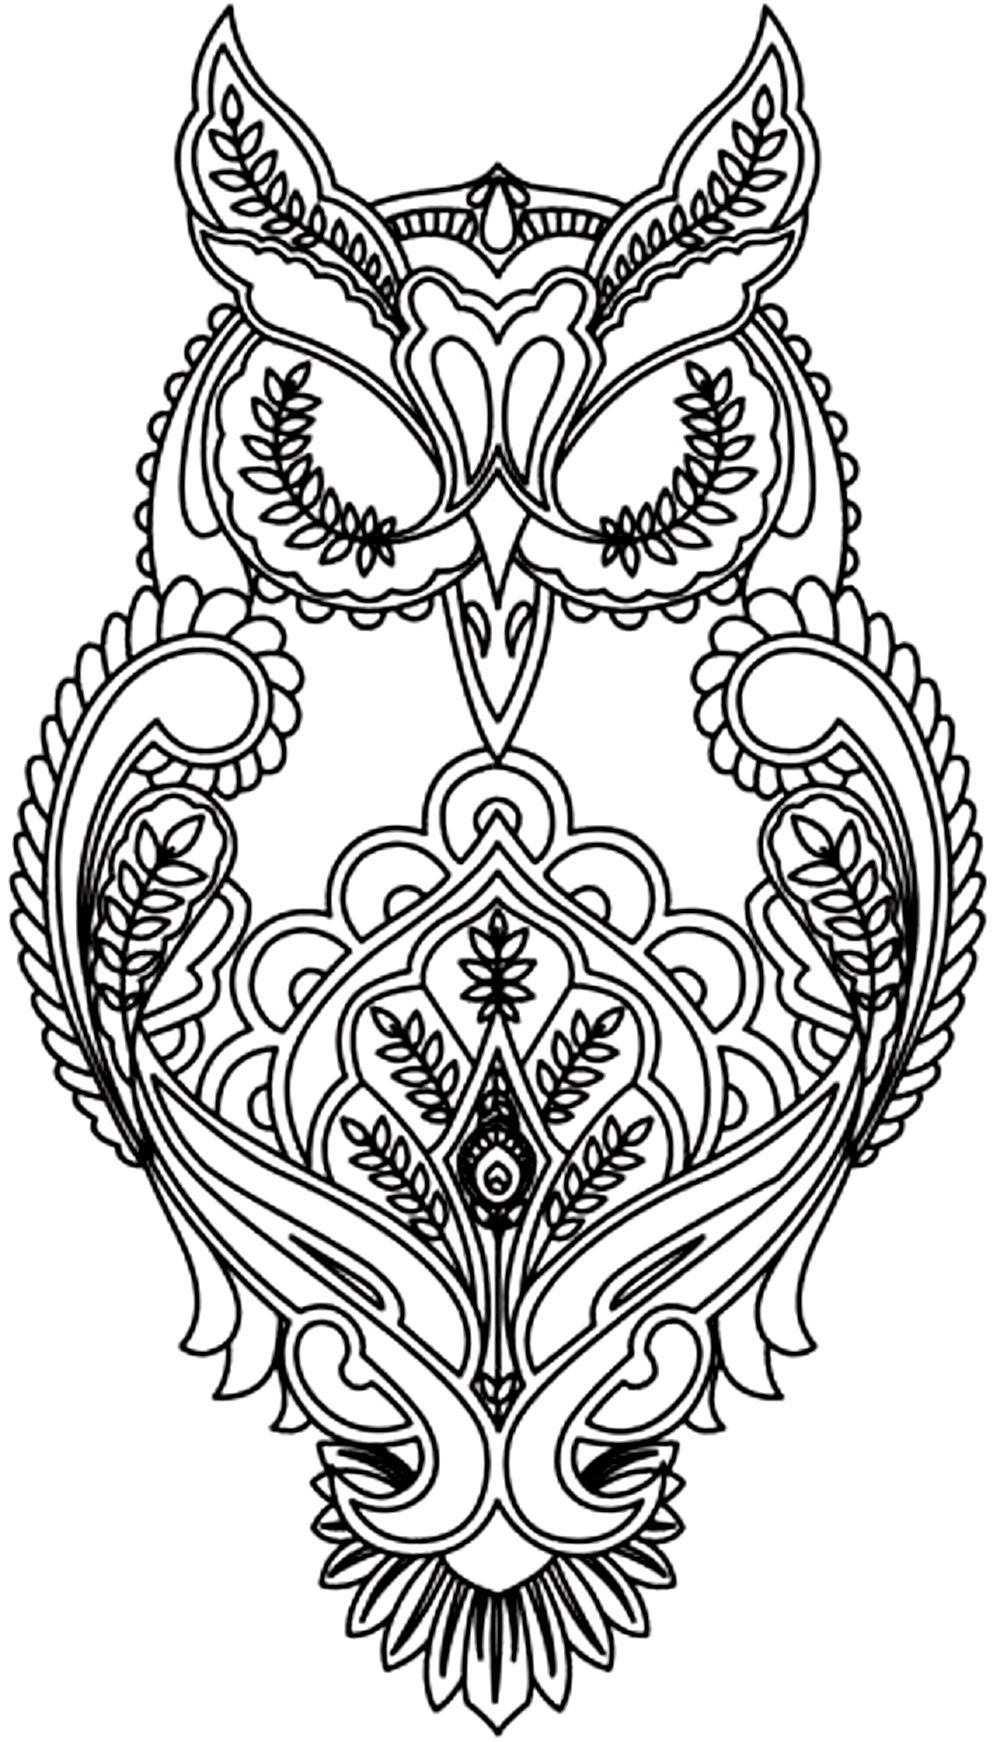 Pages to color for adults - Free Coloring Page Coloring Adult Difficult Owl